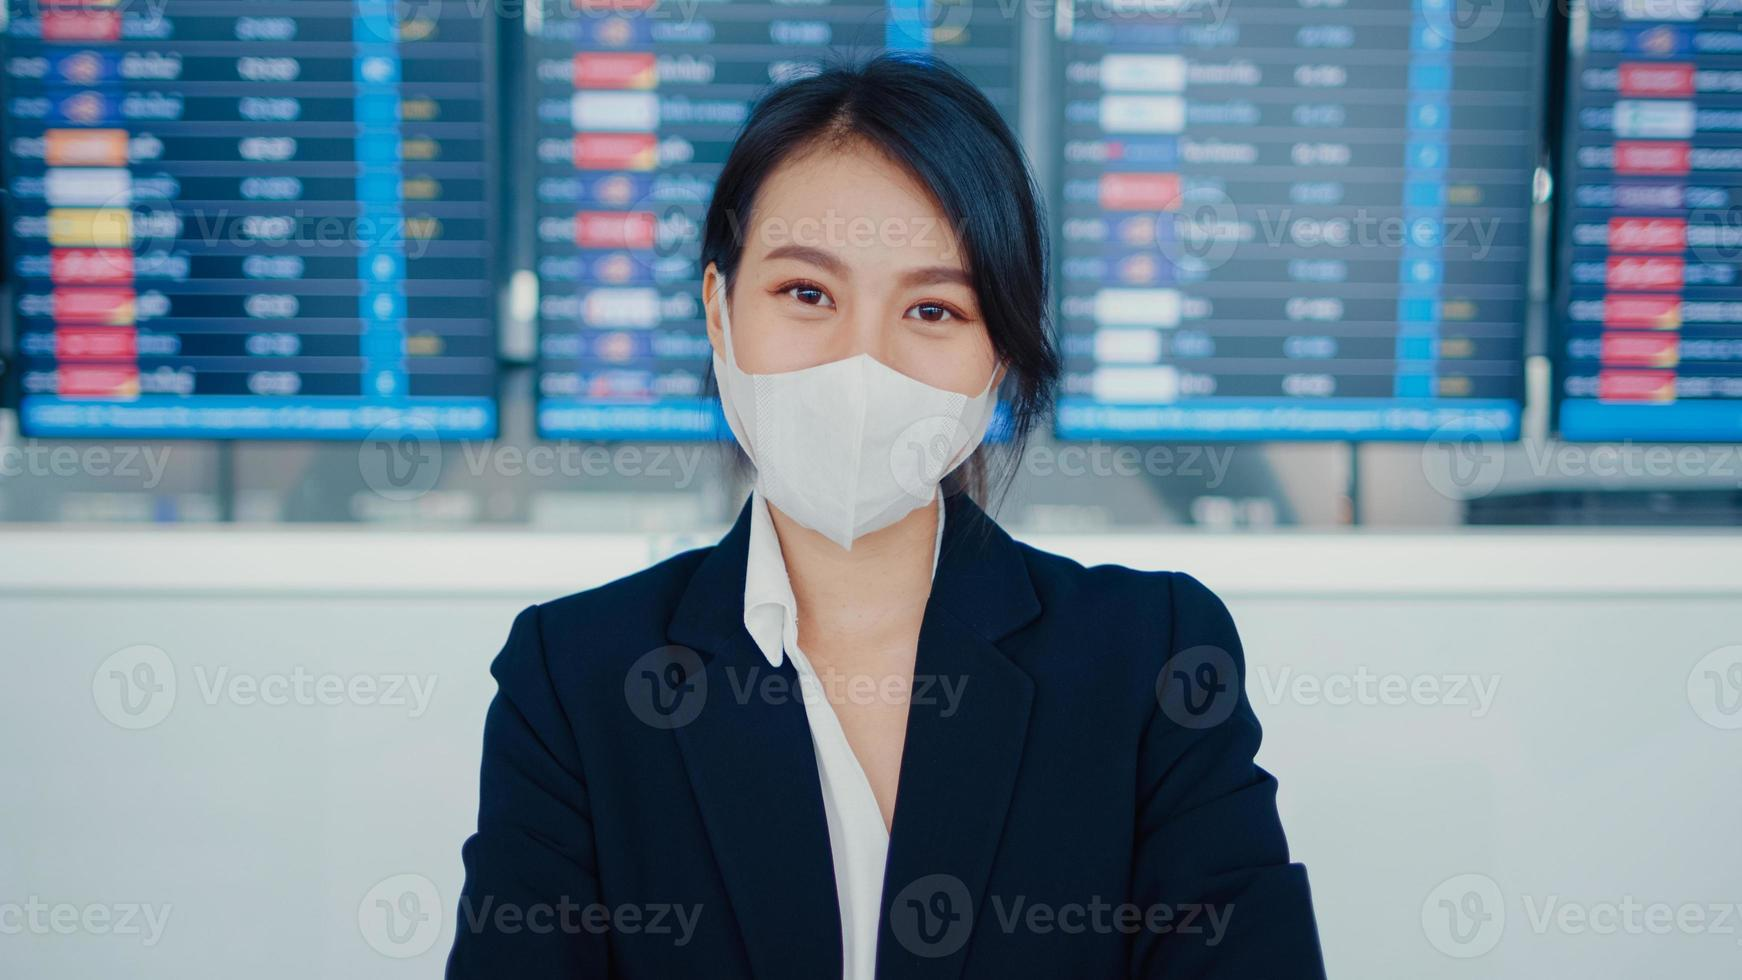 Asian business girl wear face mask stand in front of board flight show time look at camera international airport. Business commuter covid pandemic, Commuter social distancing, Business travel concept. photo